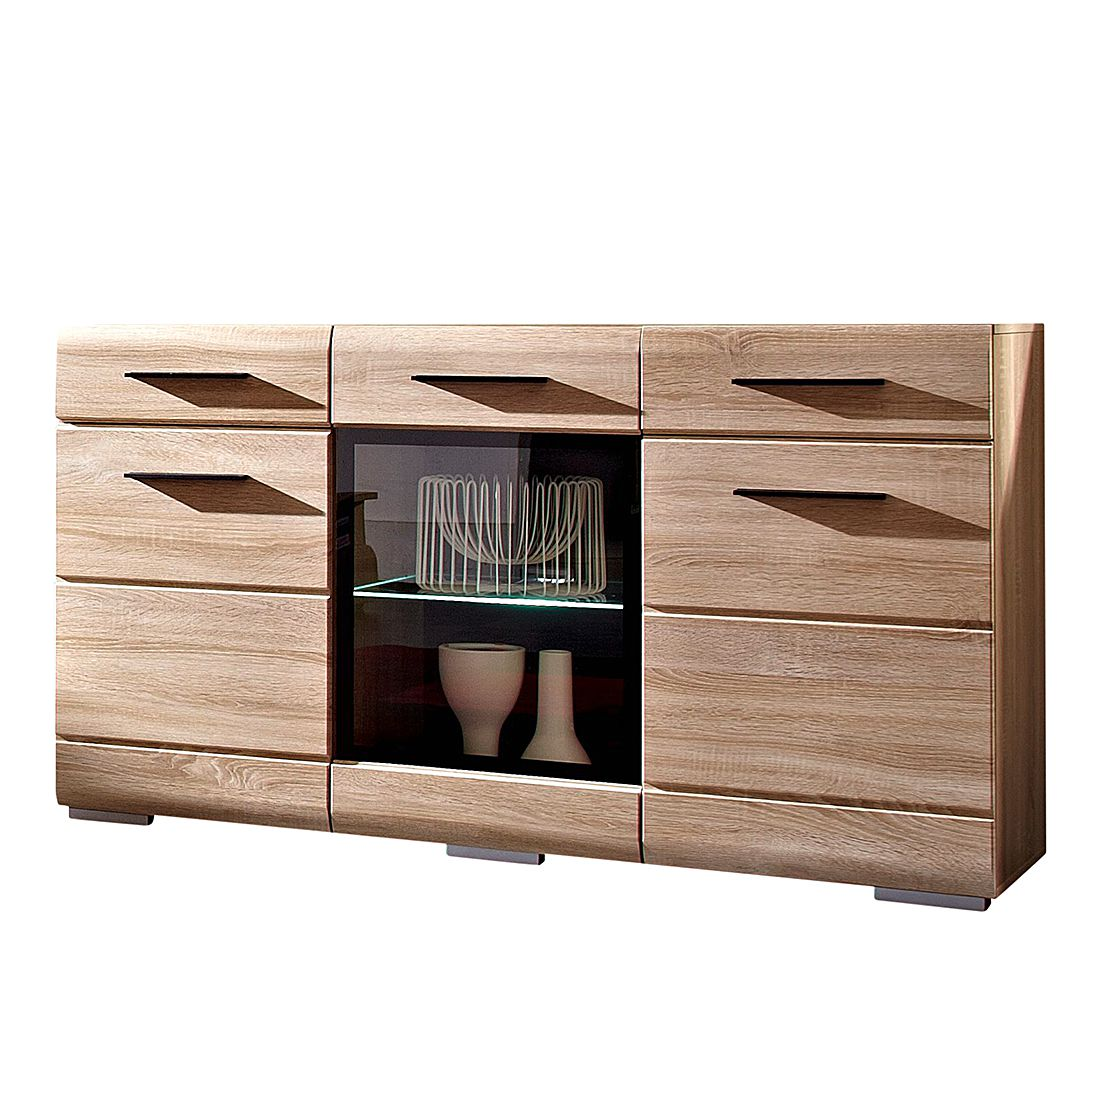 eckschrank sonoma eiche elegant eckschrank sonoma eiche. Black Bedroom Furniture Sets. Home Design Ideas